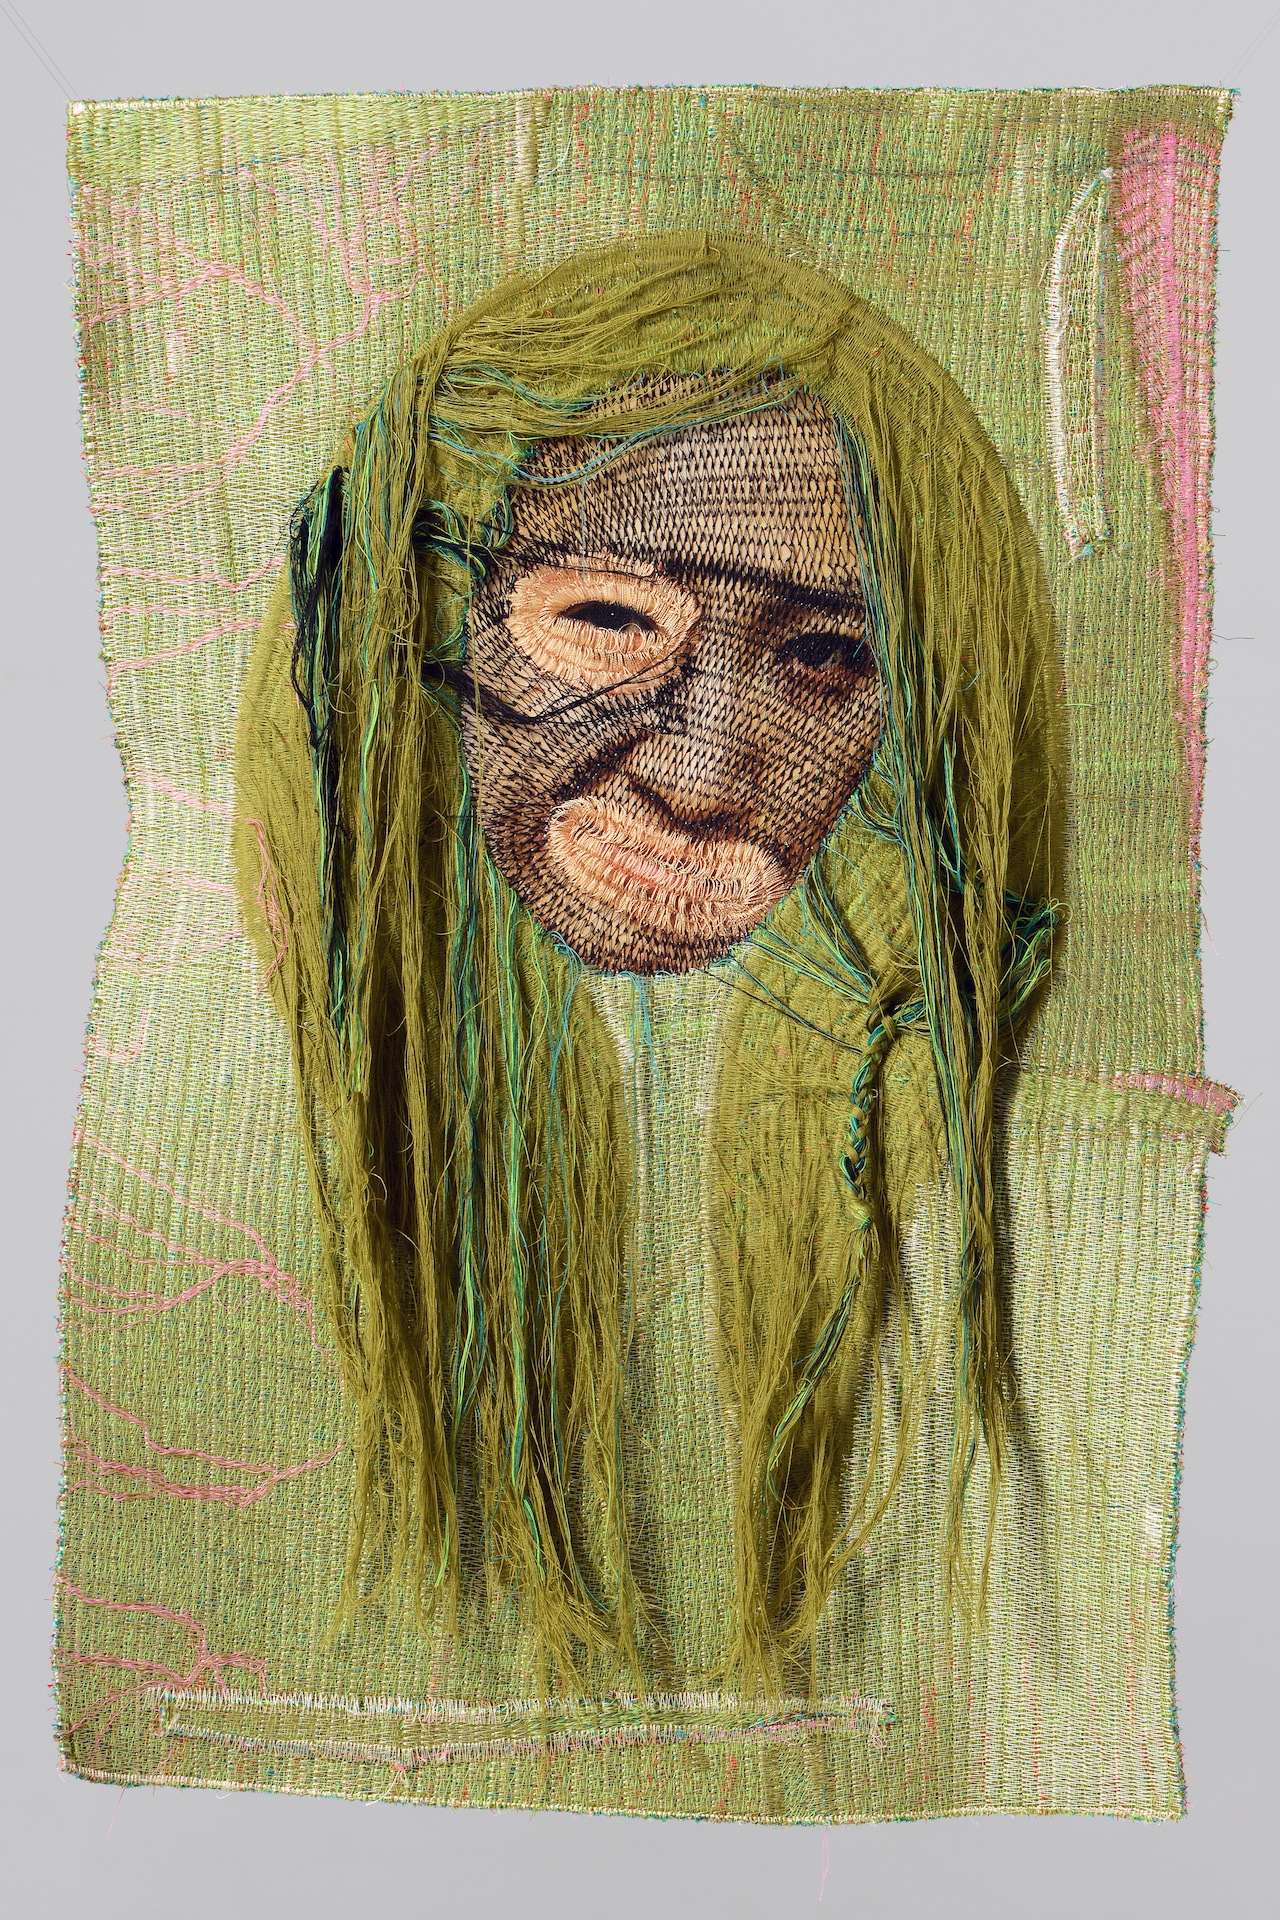 Rag face #15017, 2015 (front), 45x67cm sewing on photo